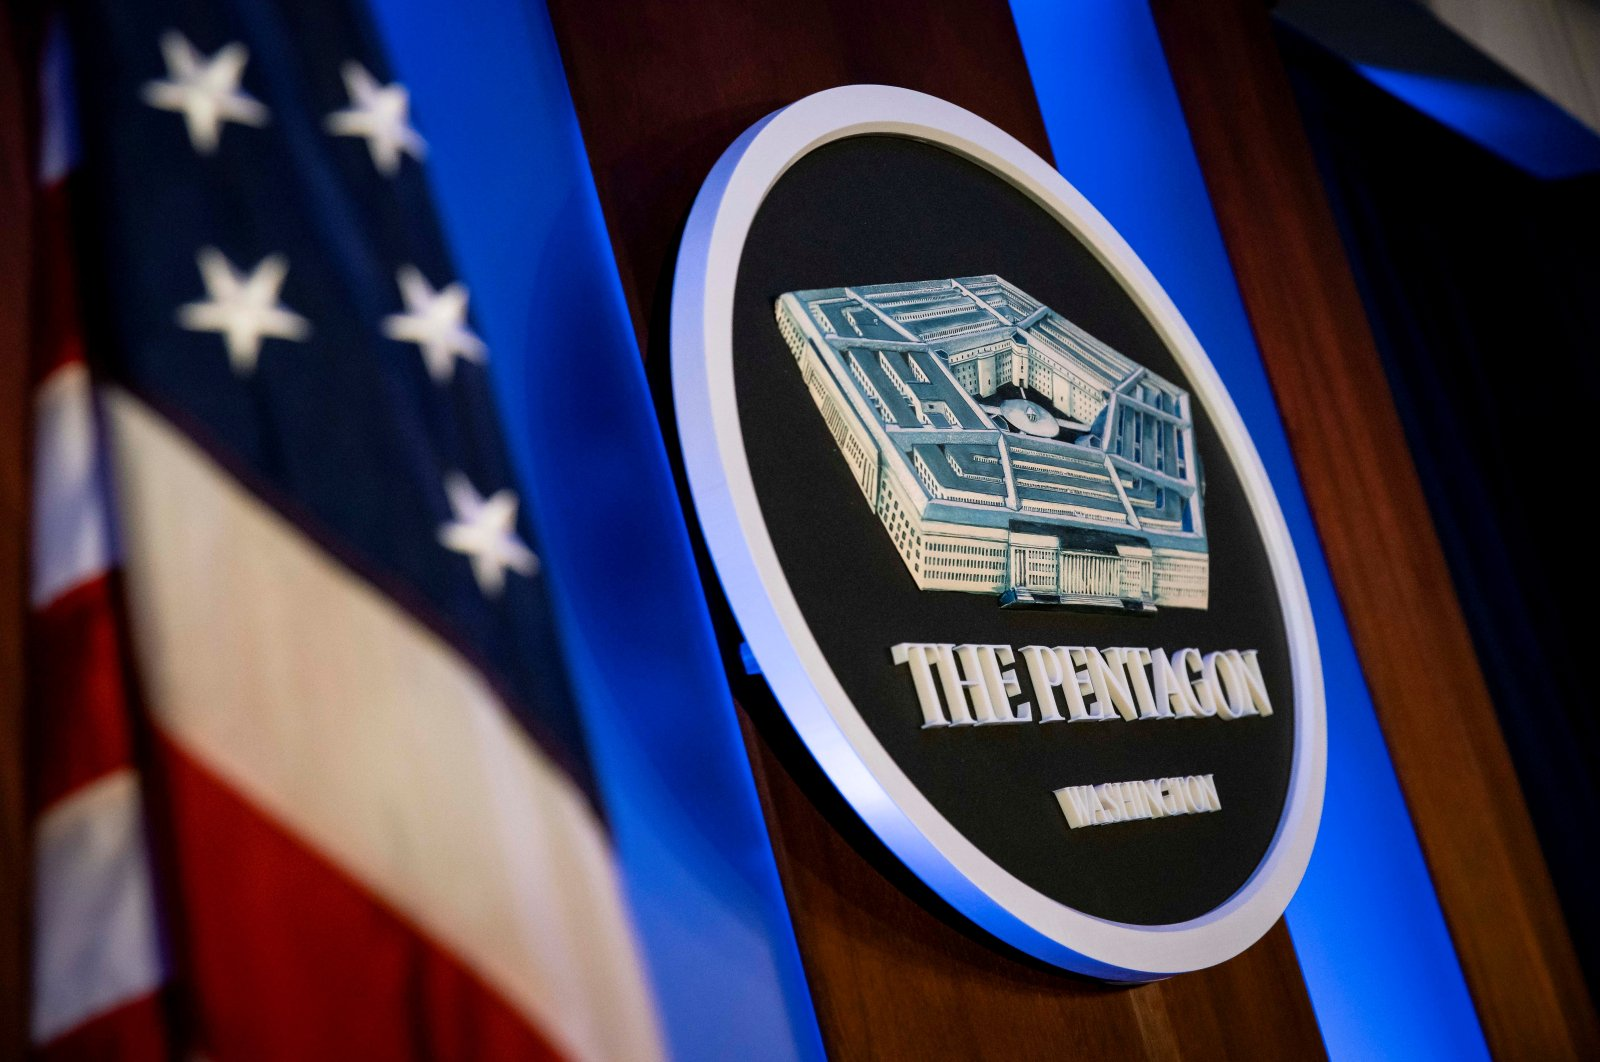 The Pentagon logo is seen behind the podium in the briefing room at the Pentagon in Arlington, Va., Jan. 8, 2020. (Reuters Photo)